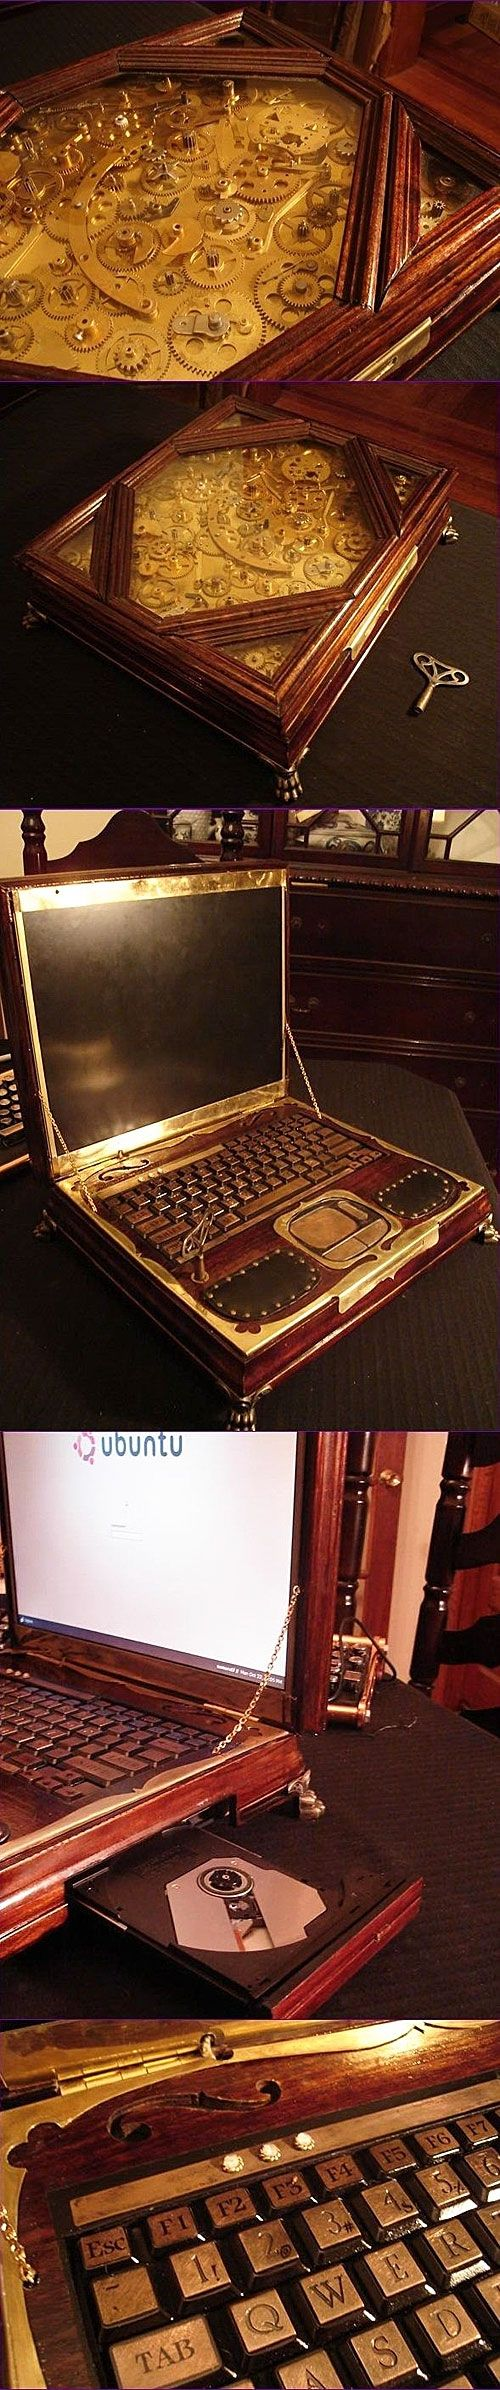 now we are talking.... i would buy this laptop..... not those other ones....